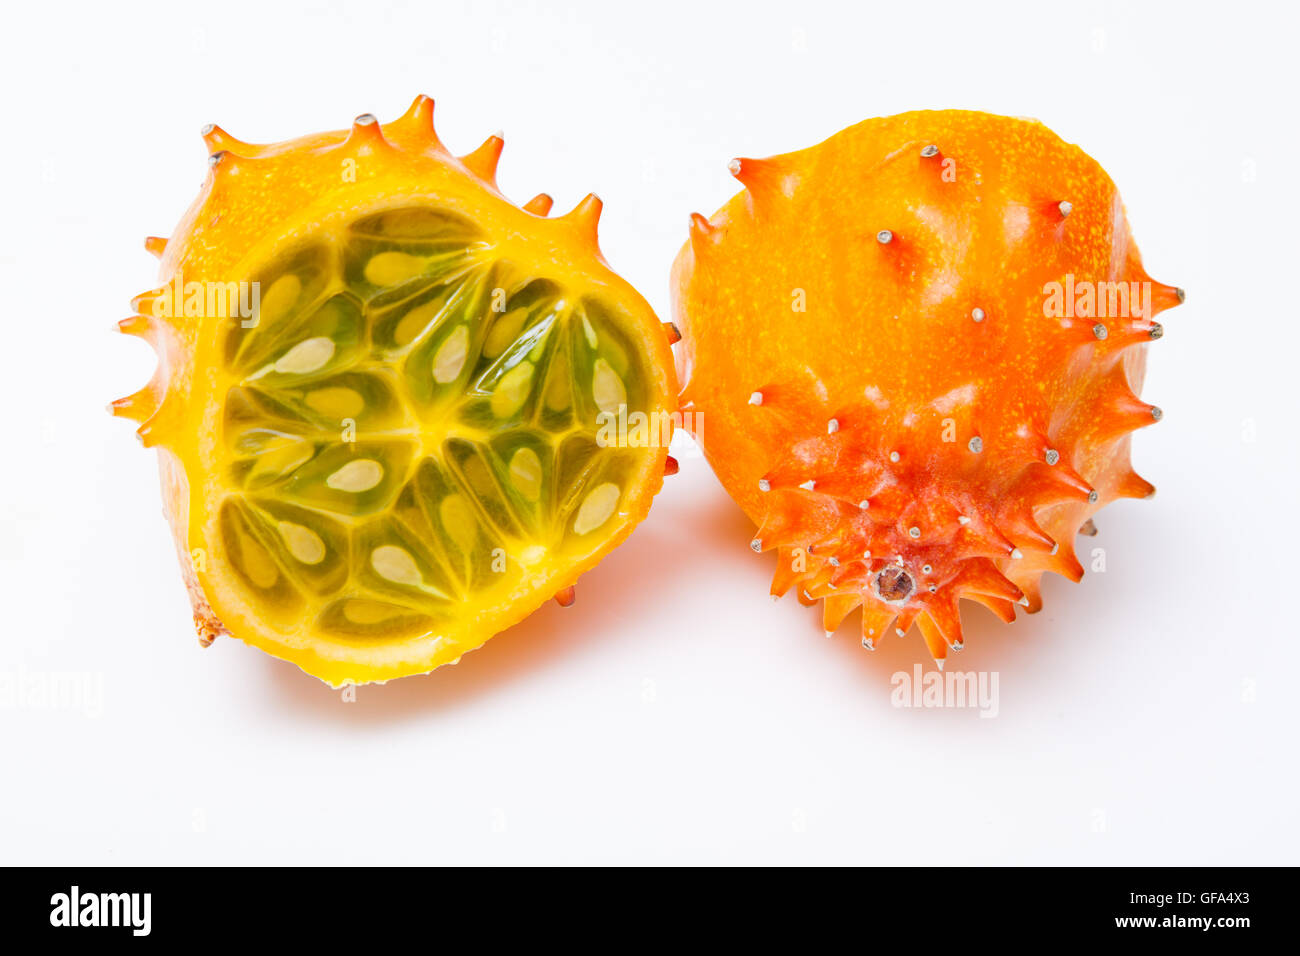 Cucumis metuliferus, horned melon or kiwano isolated on a white studio background. - Stock Image